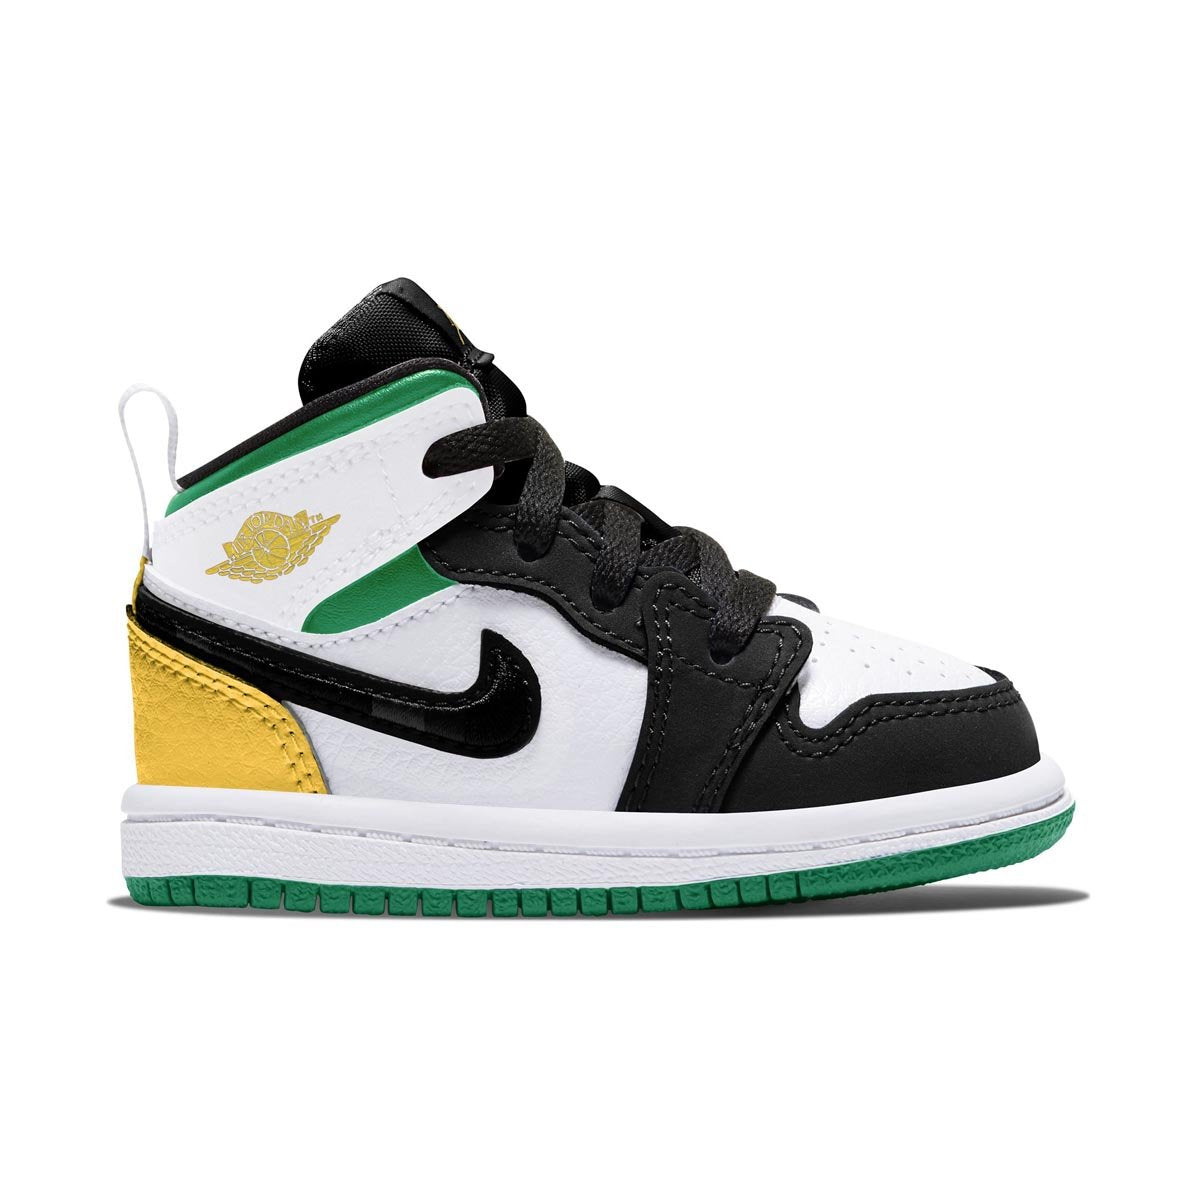 Jordan 1 Mid SE Baby/Toddler Shoe